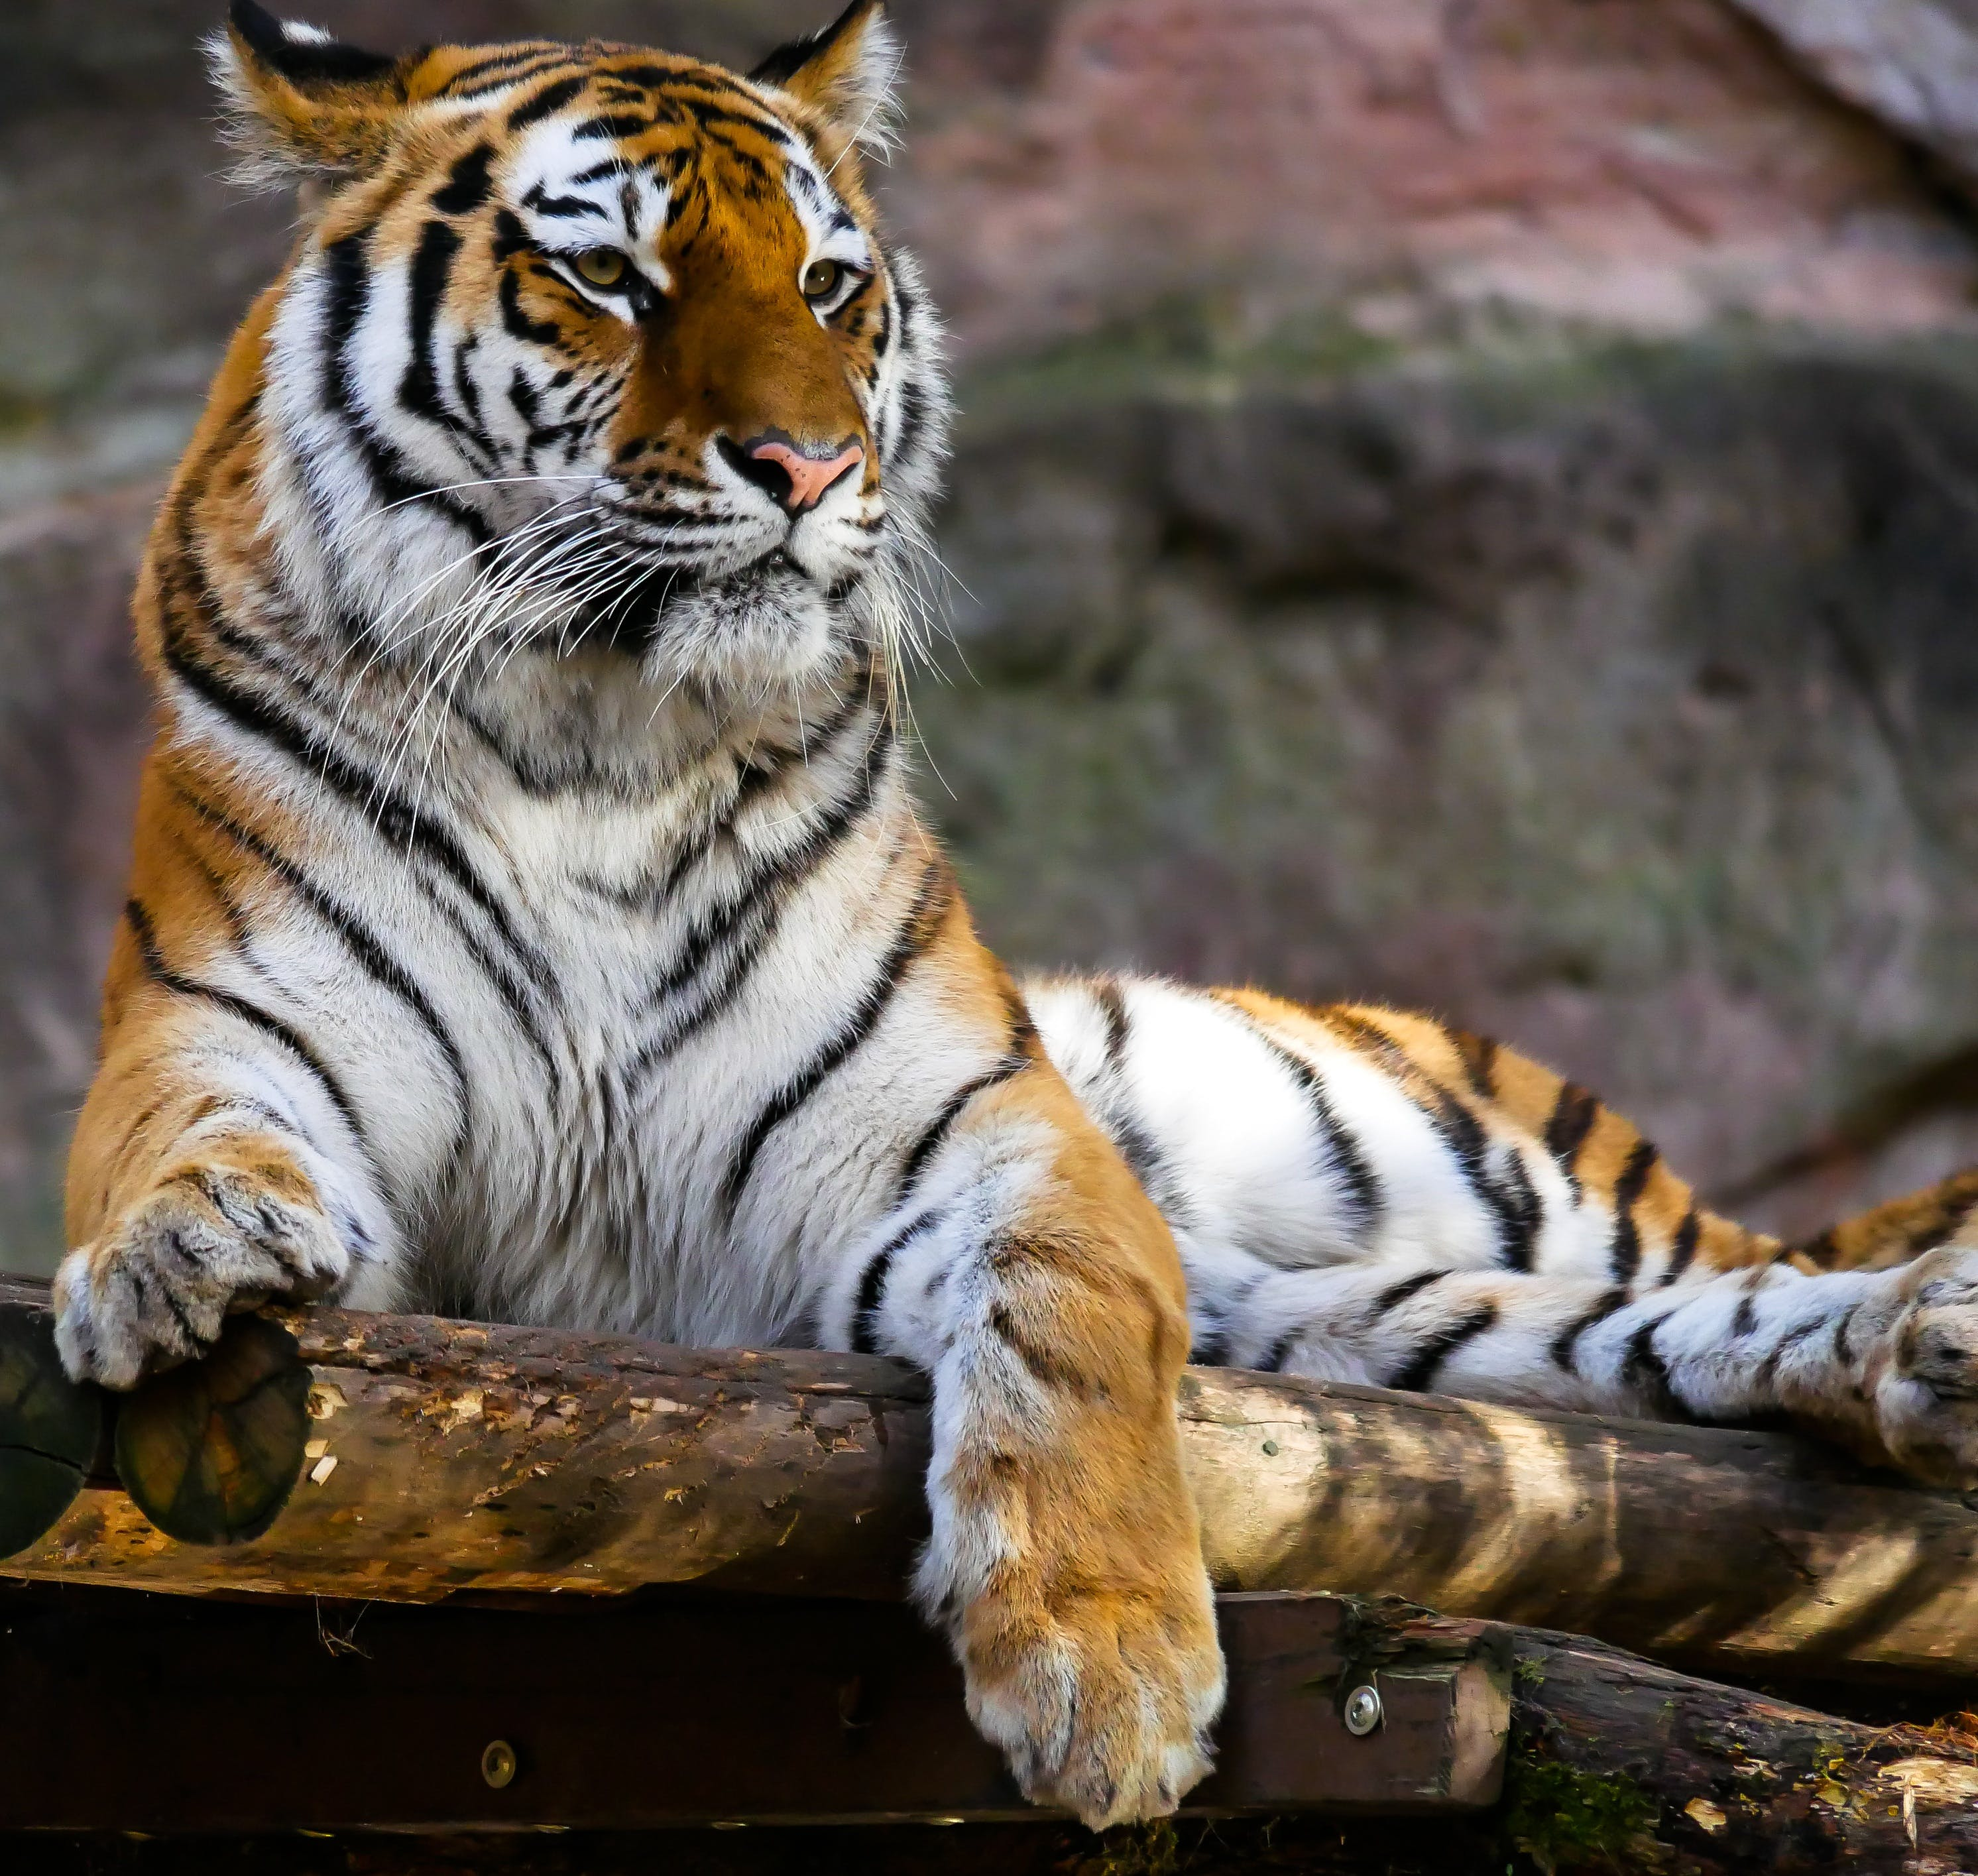 Nature wallpaper of nature, animal, tiger, safari